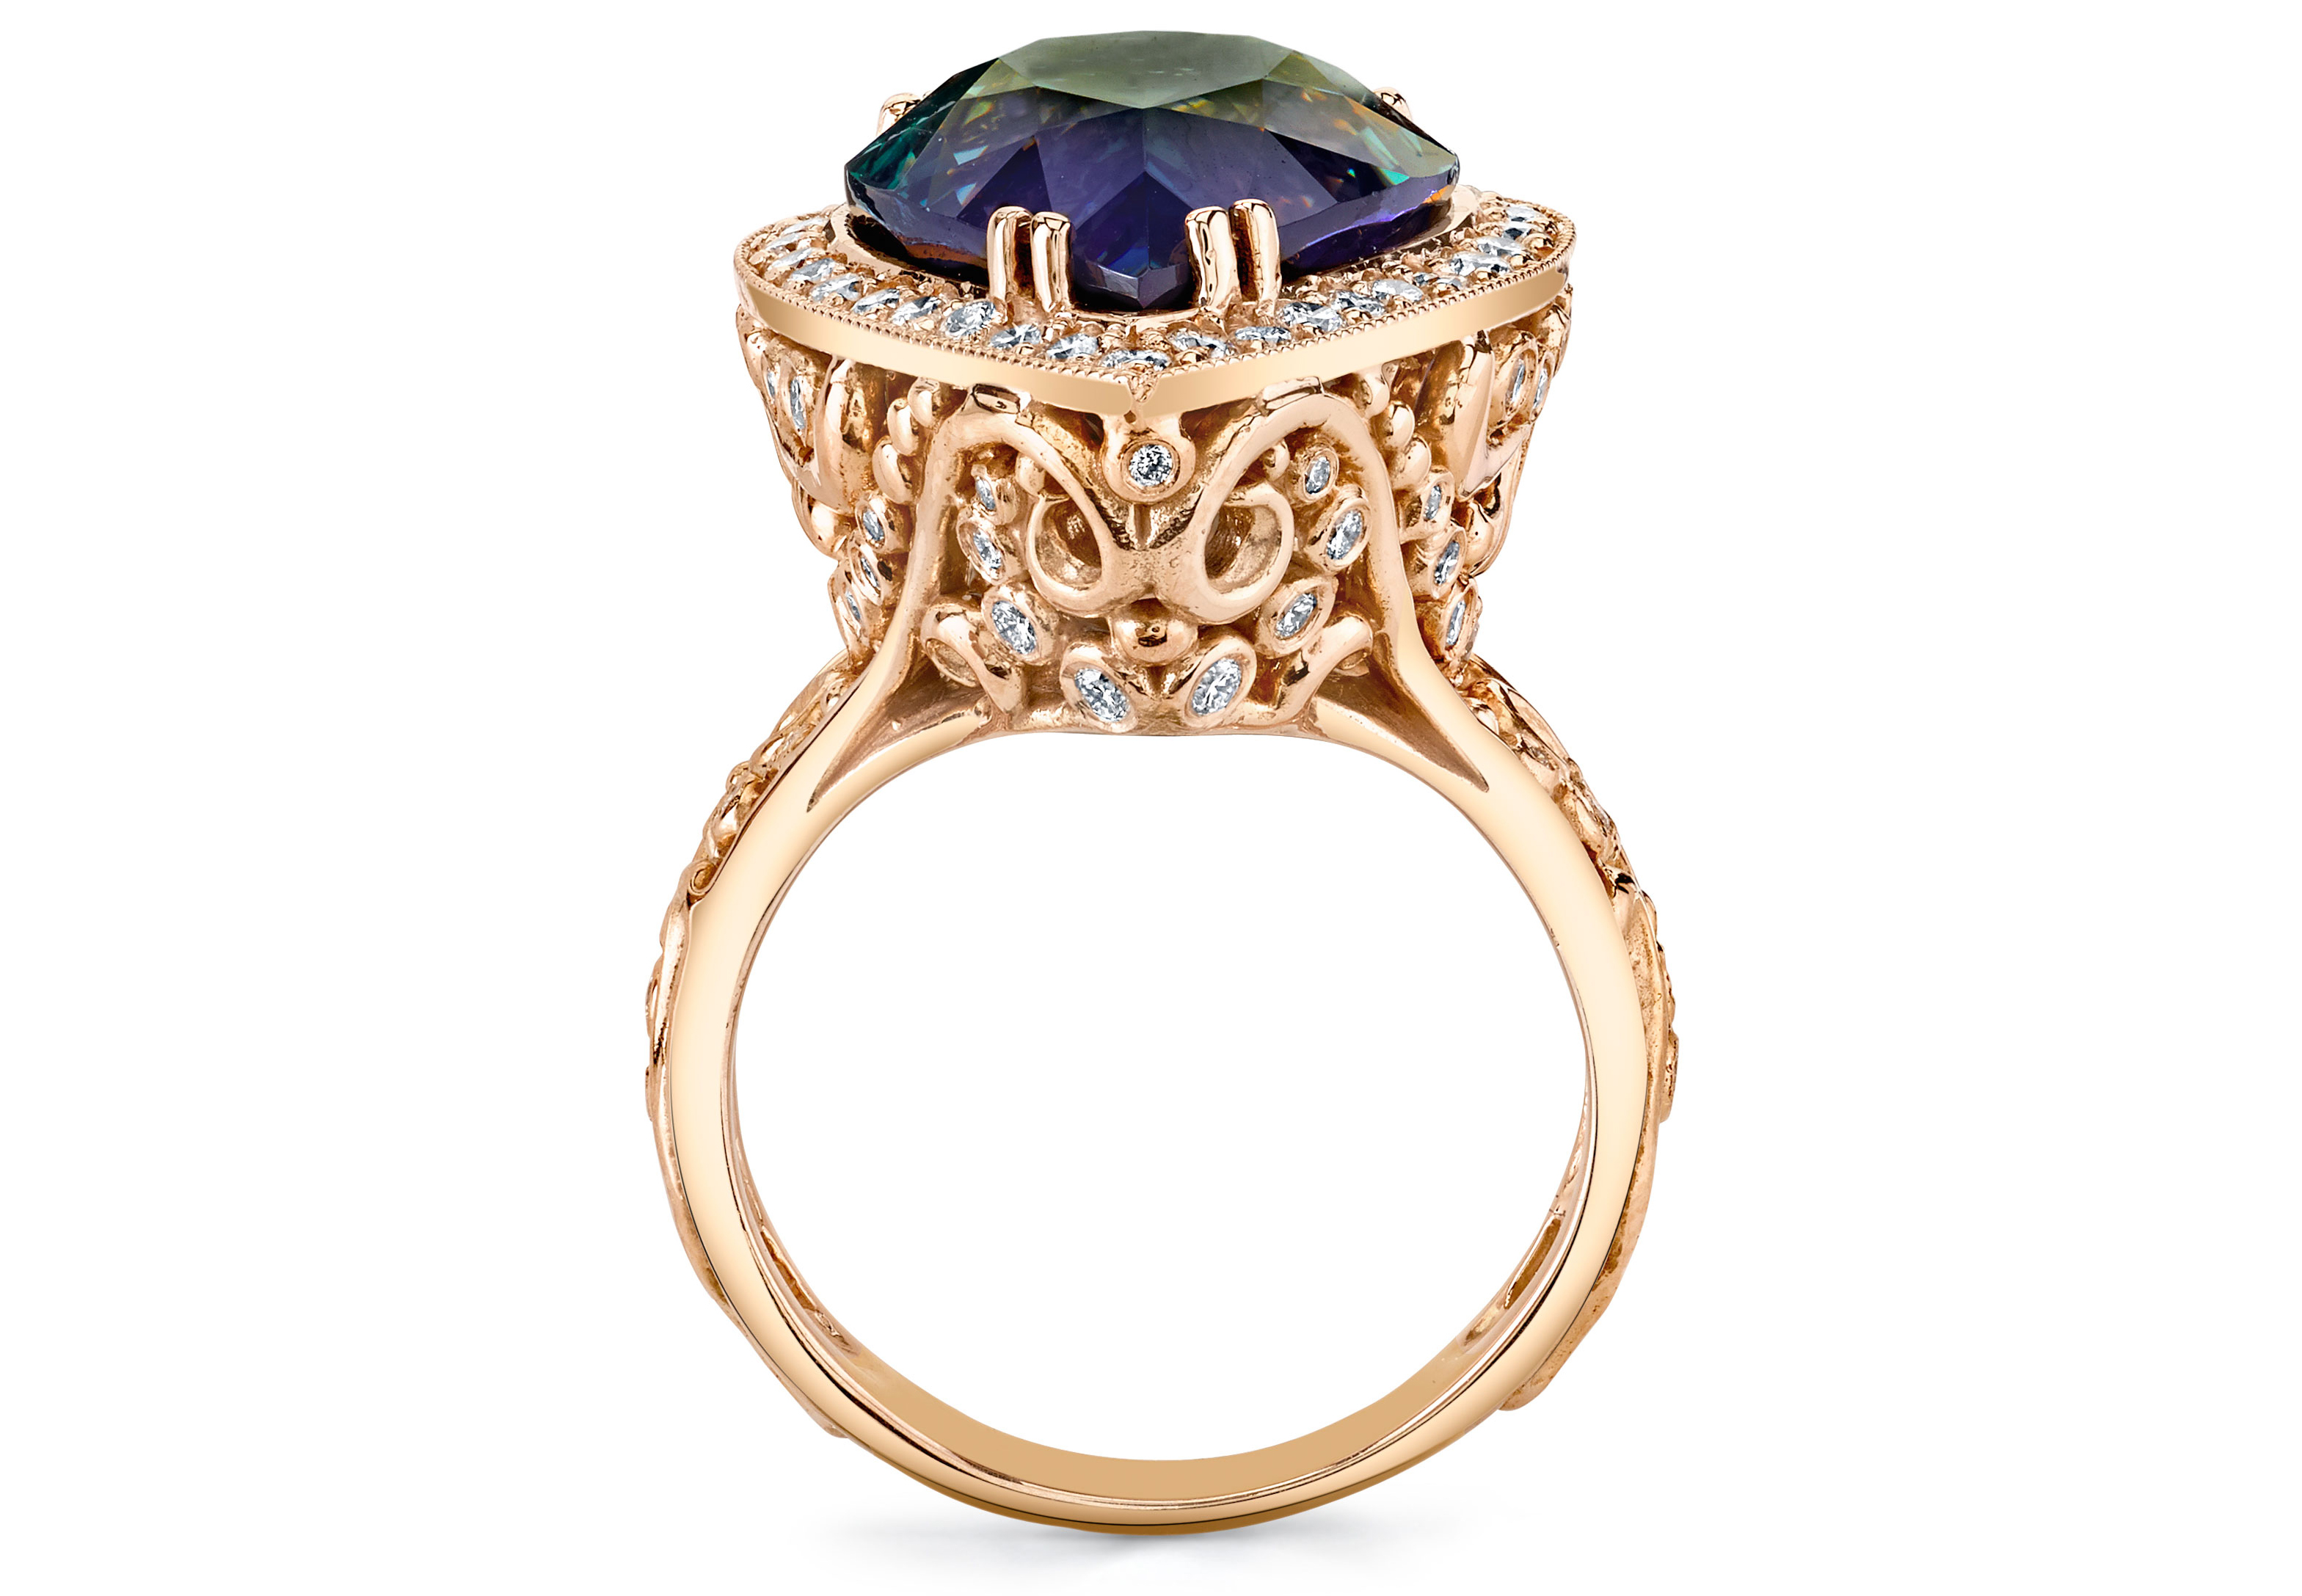 Britt s Pick Dallas Prince s Twilight Tanzanite Ring JCK